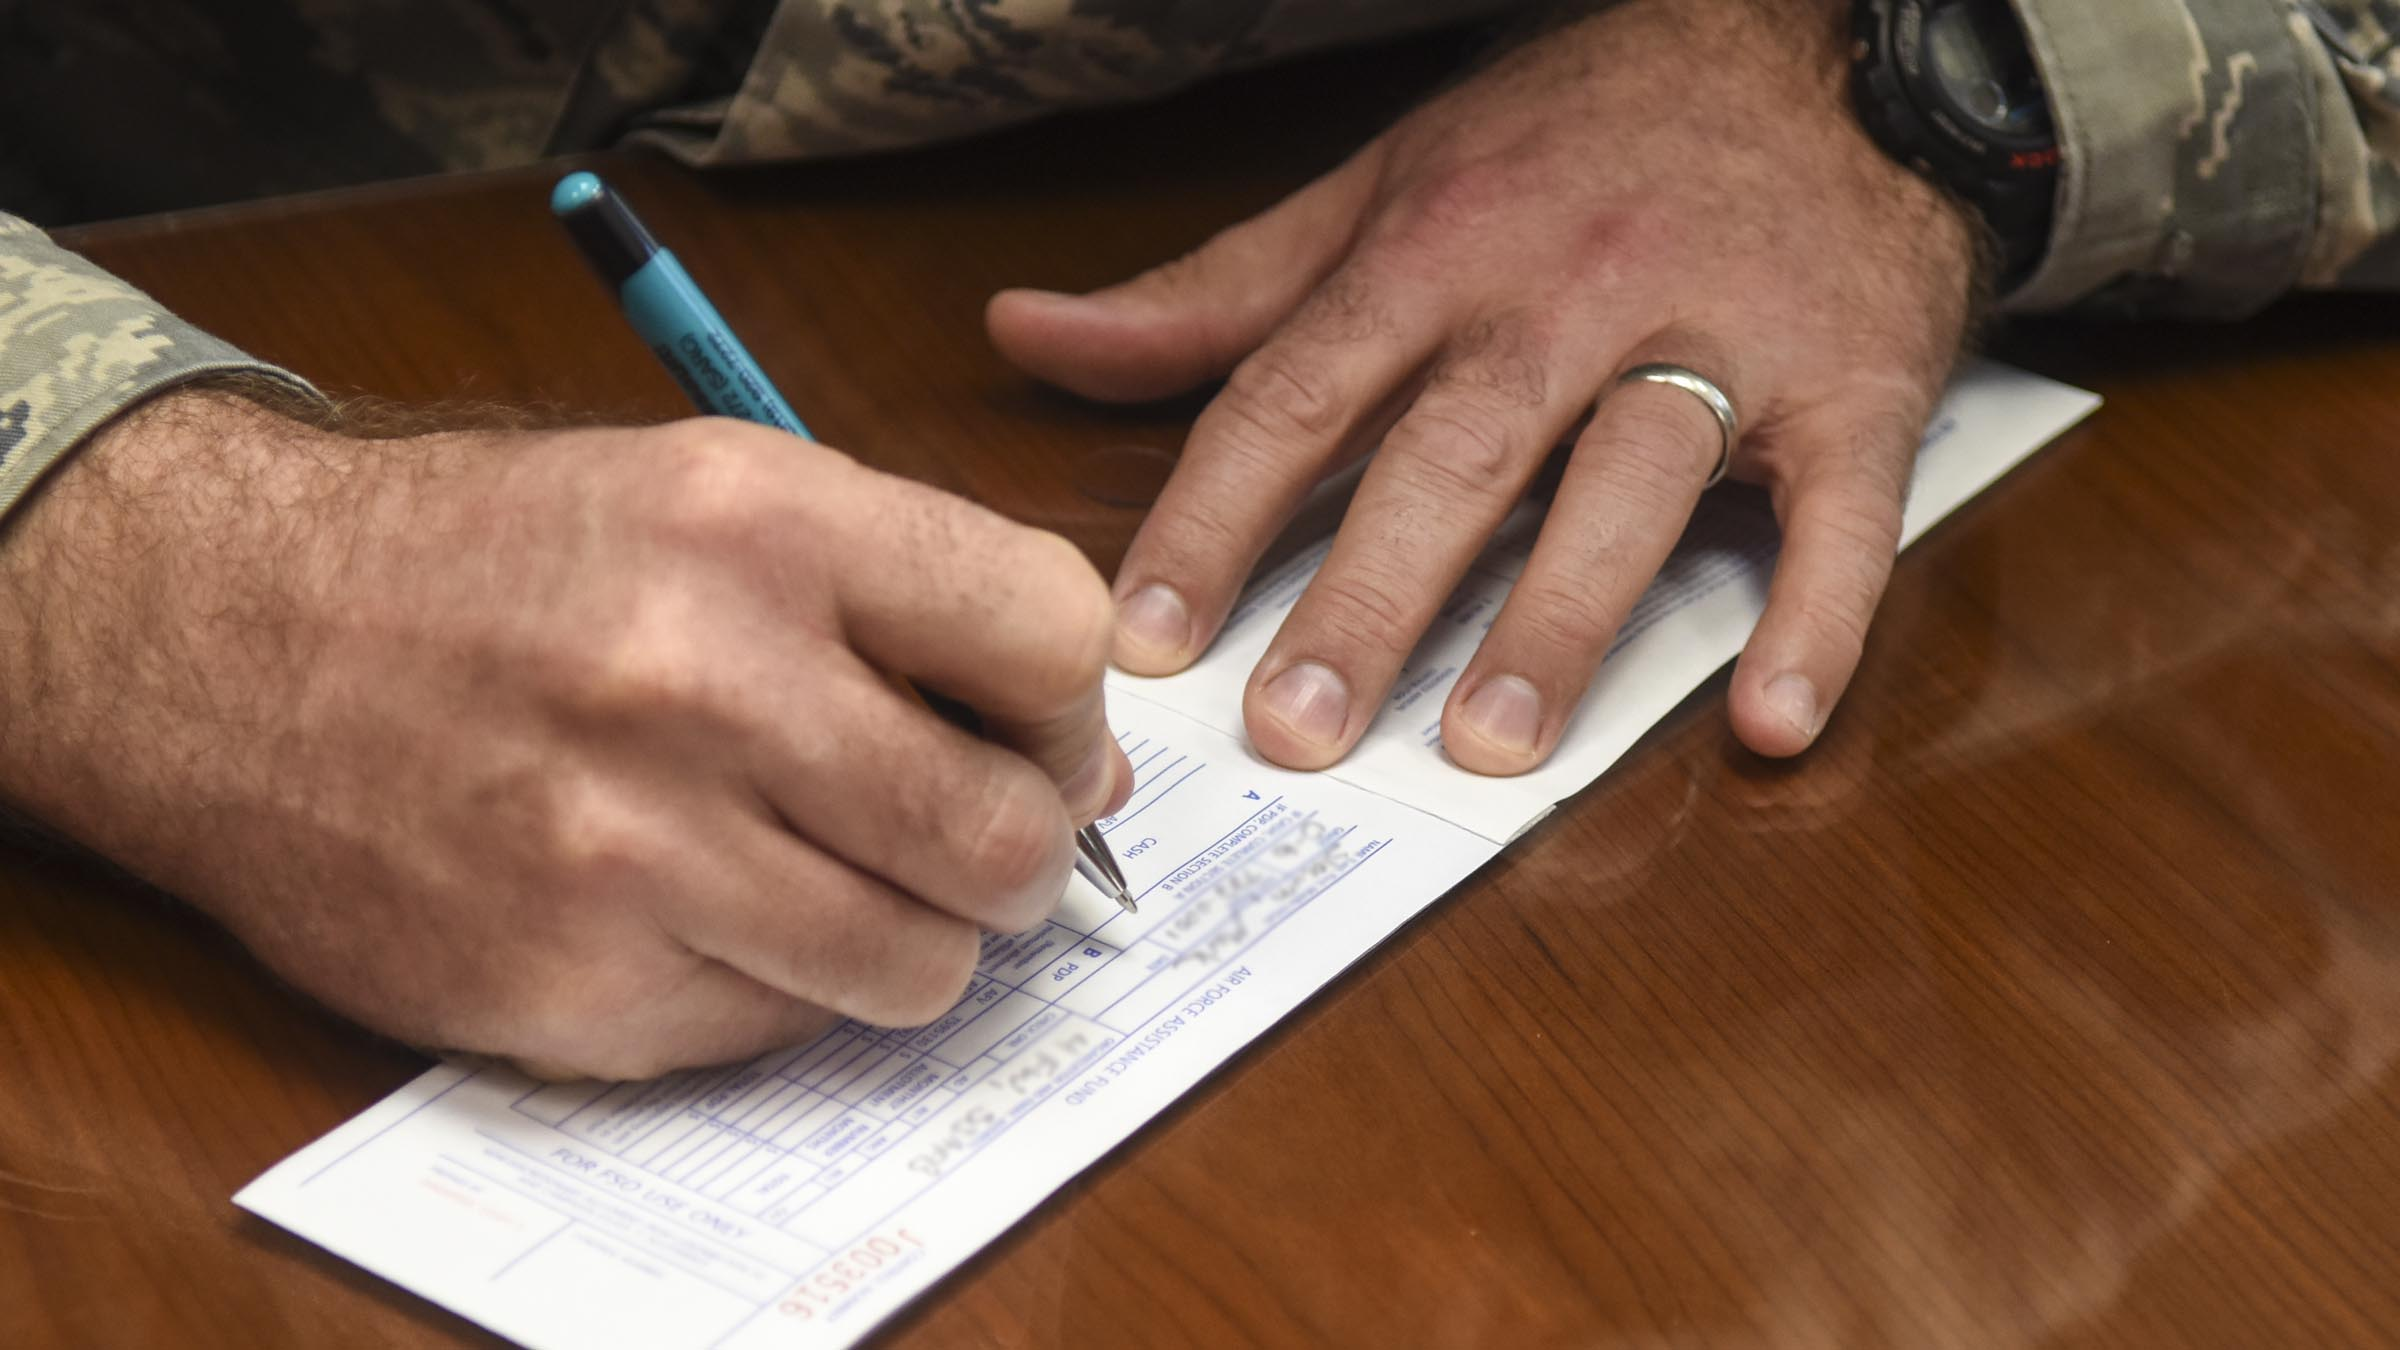 hands filling out paperwork